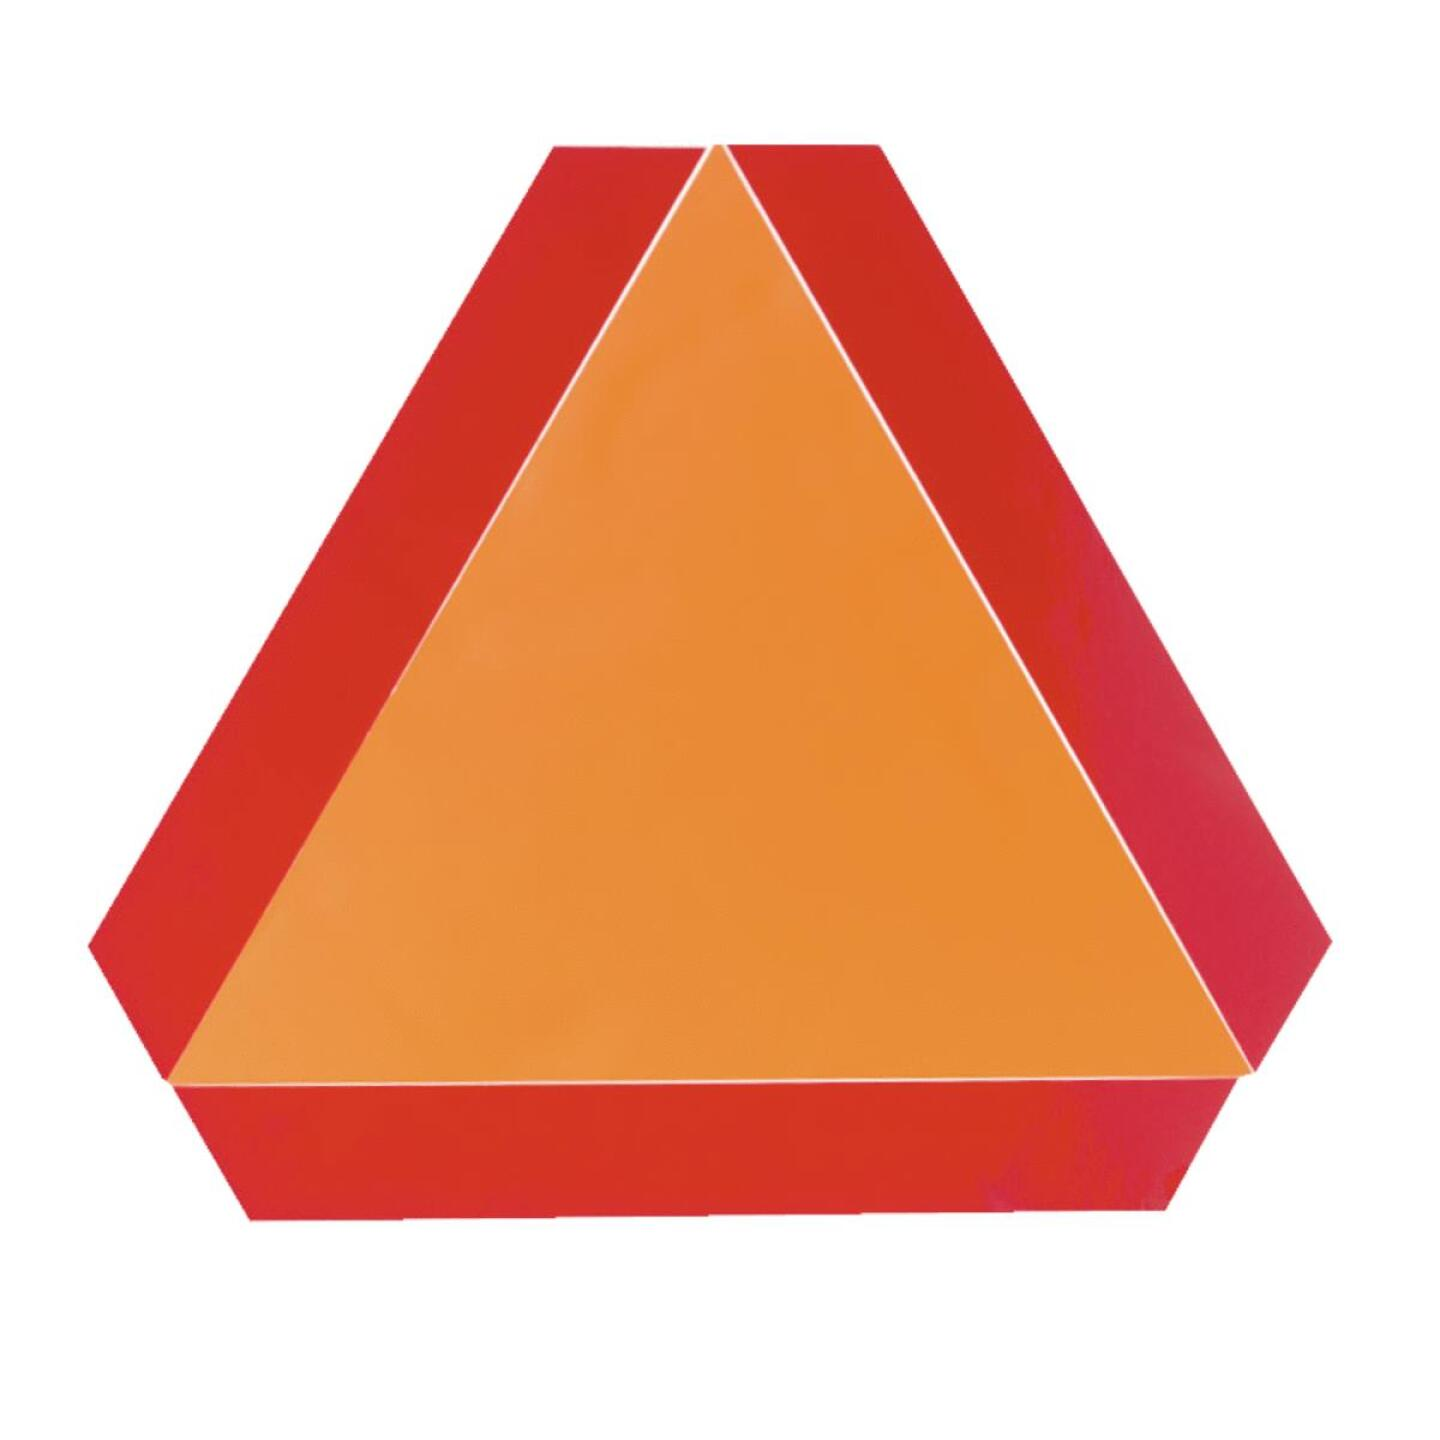 Safety Vehicle Emblem 16 In. x 14 In. Slow Moving Vehicle Emblem, Decal Image 1